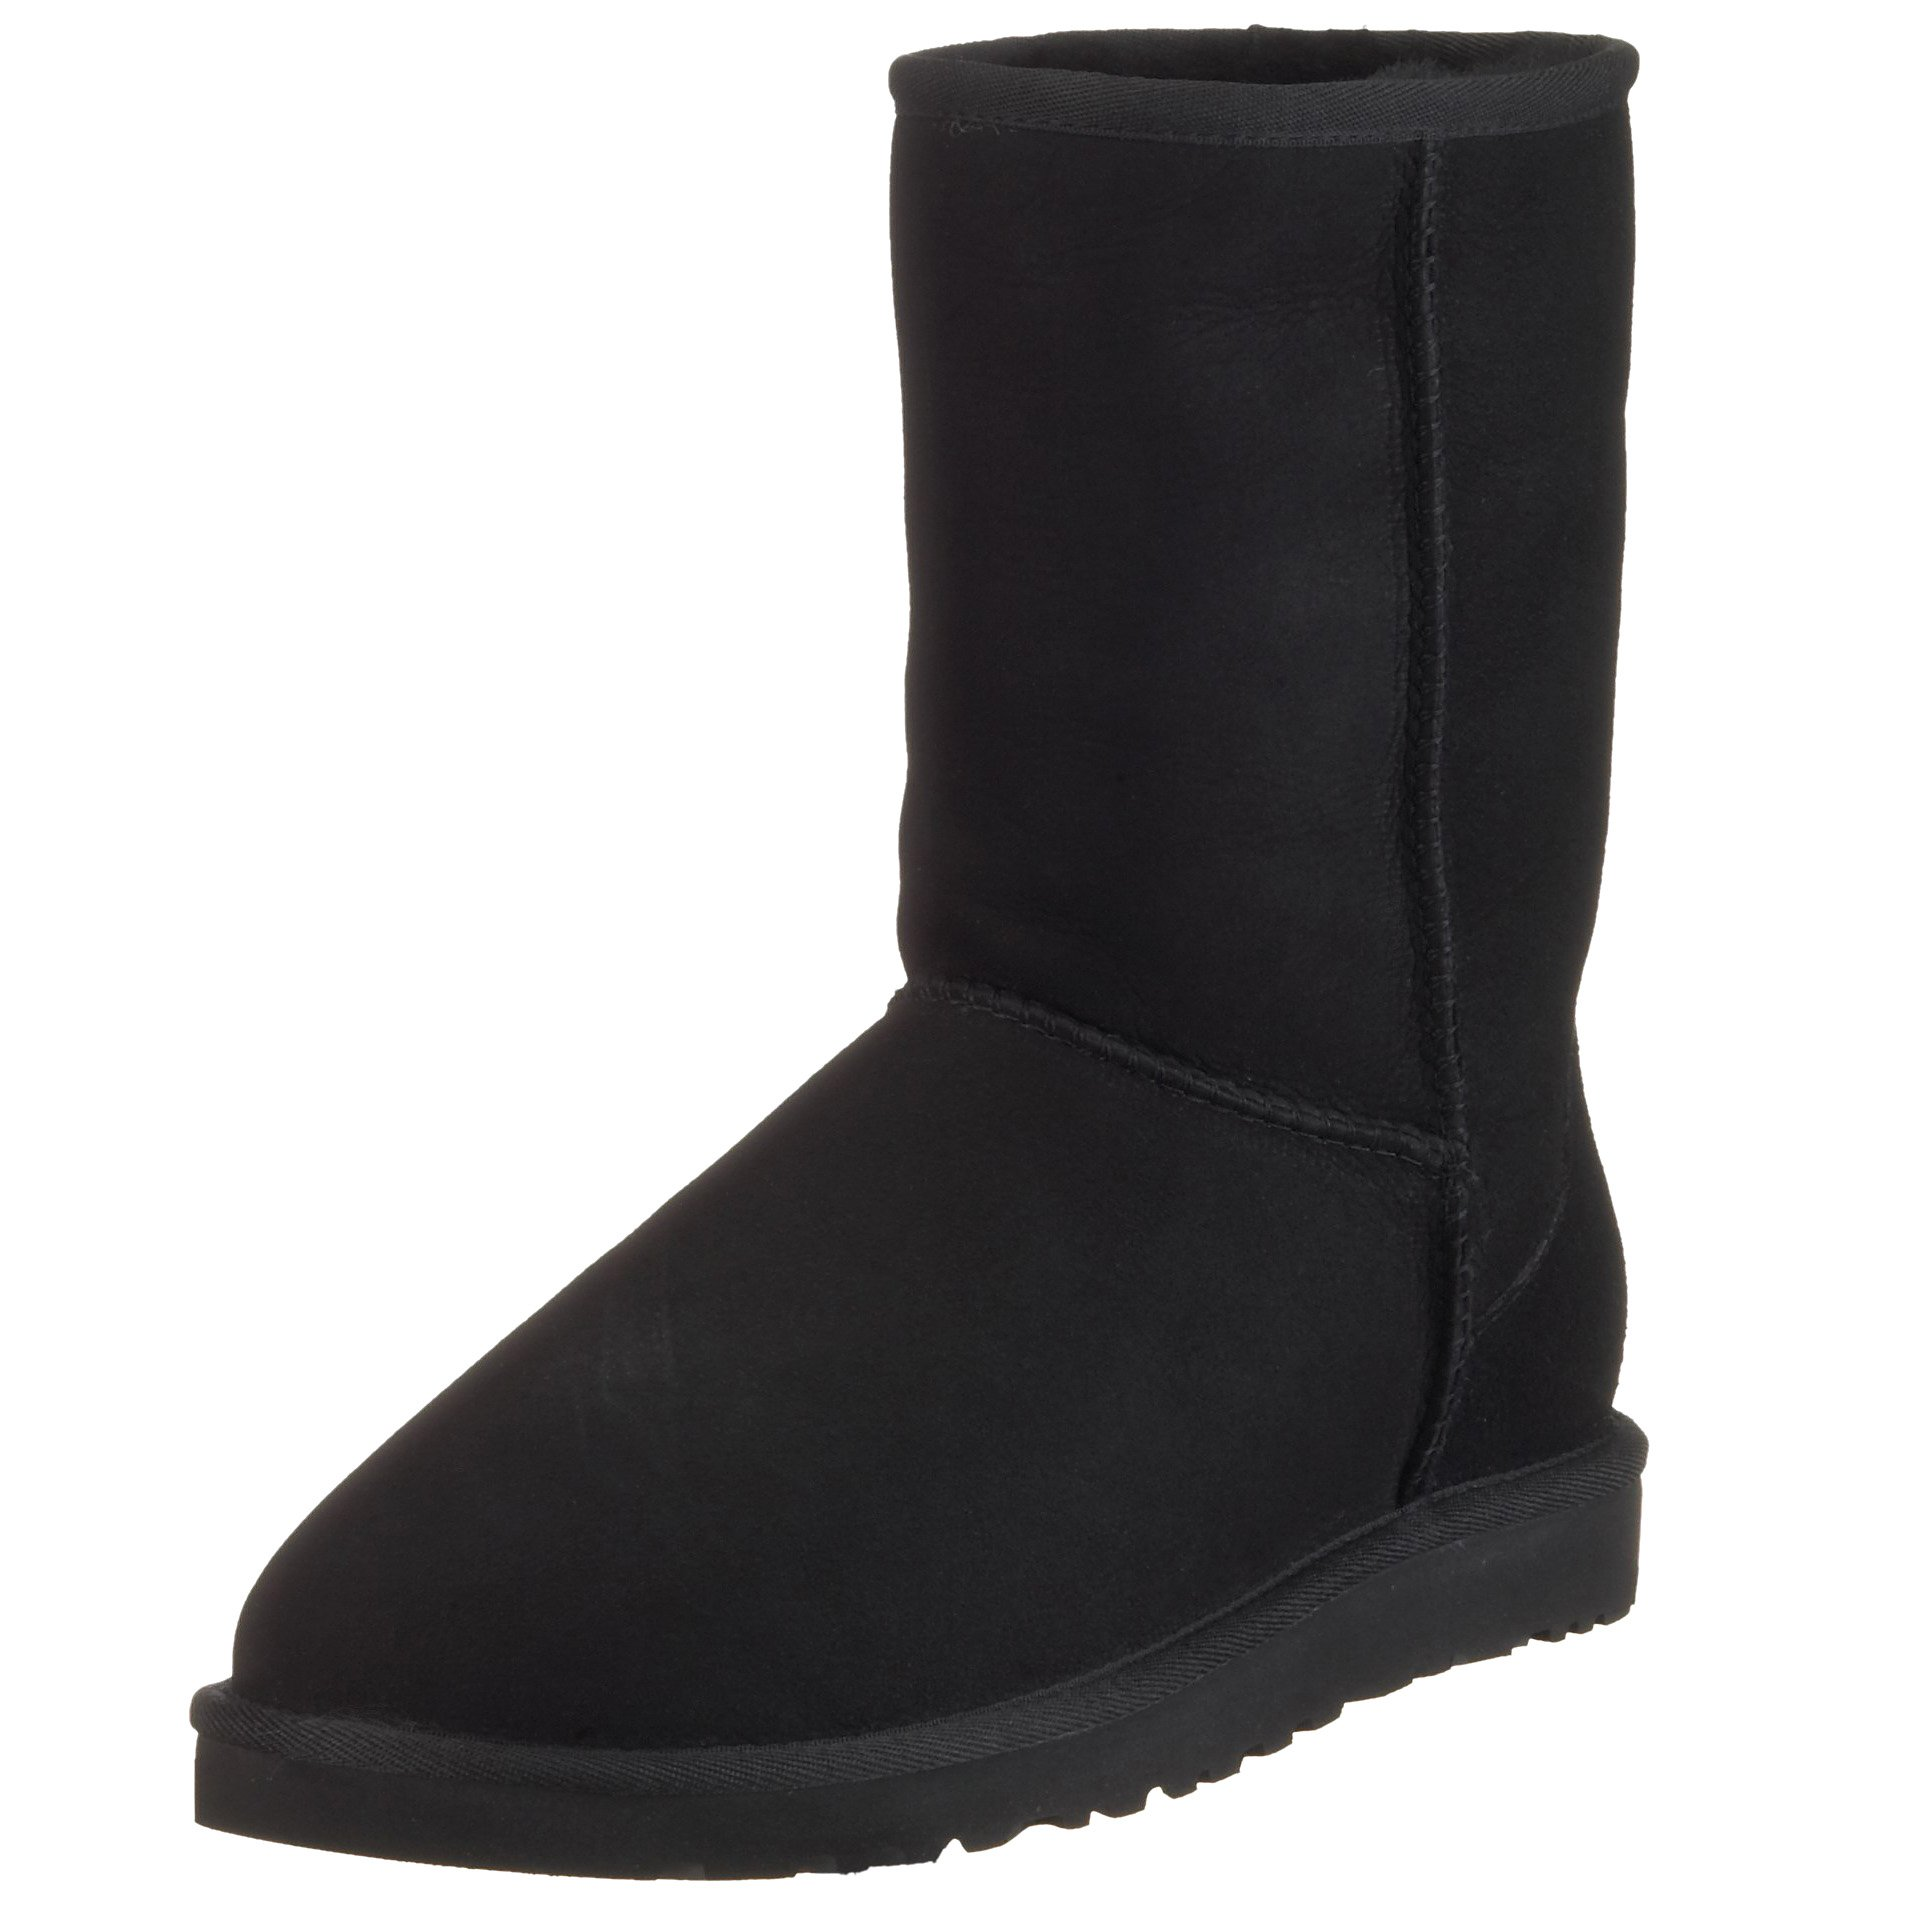 UGG Men's Classic Short Winter Boot, Black, 15 M US by UGG